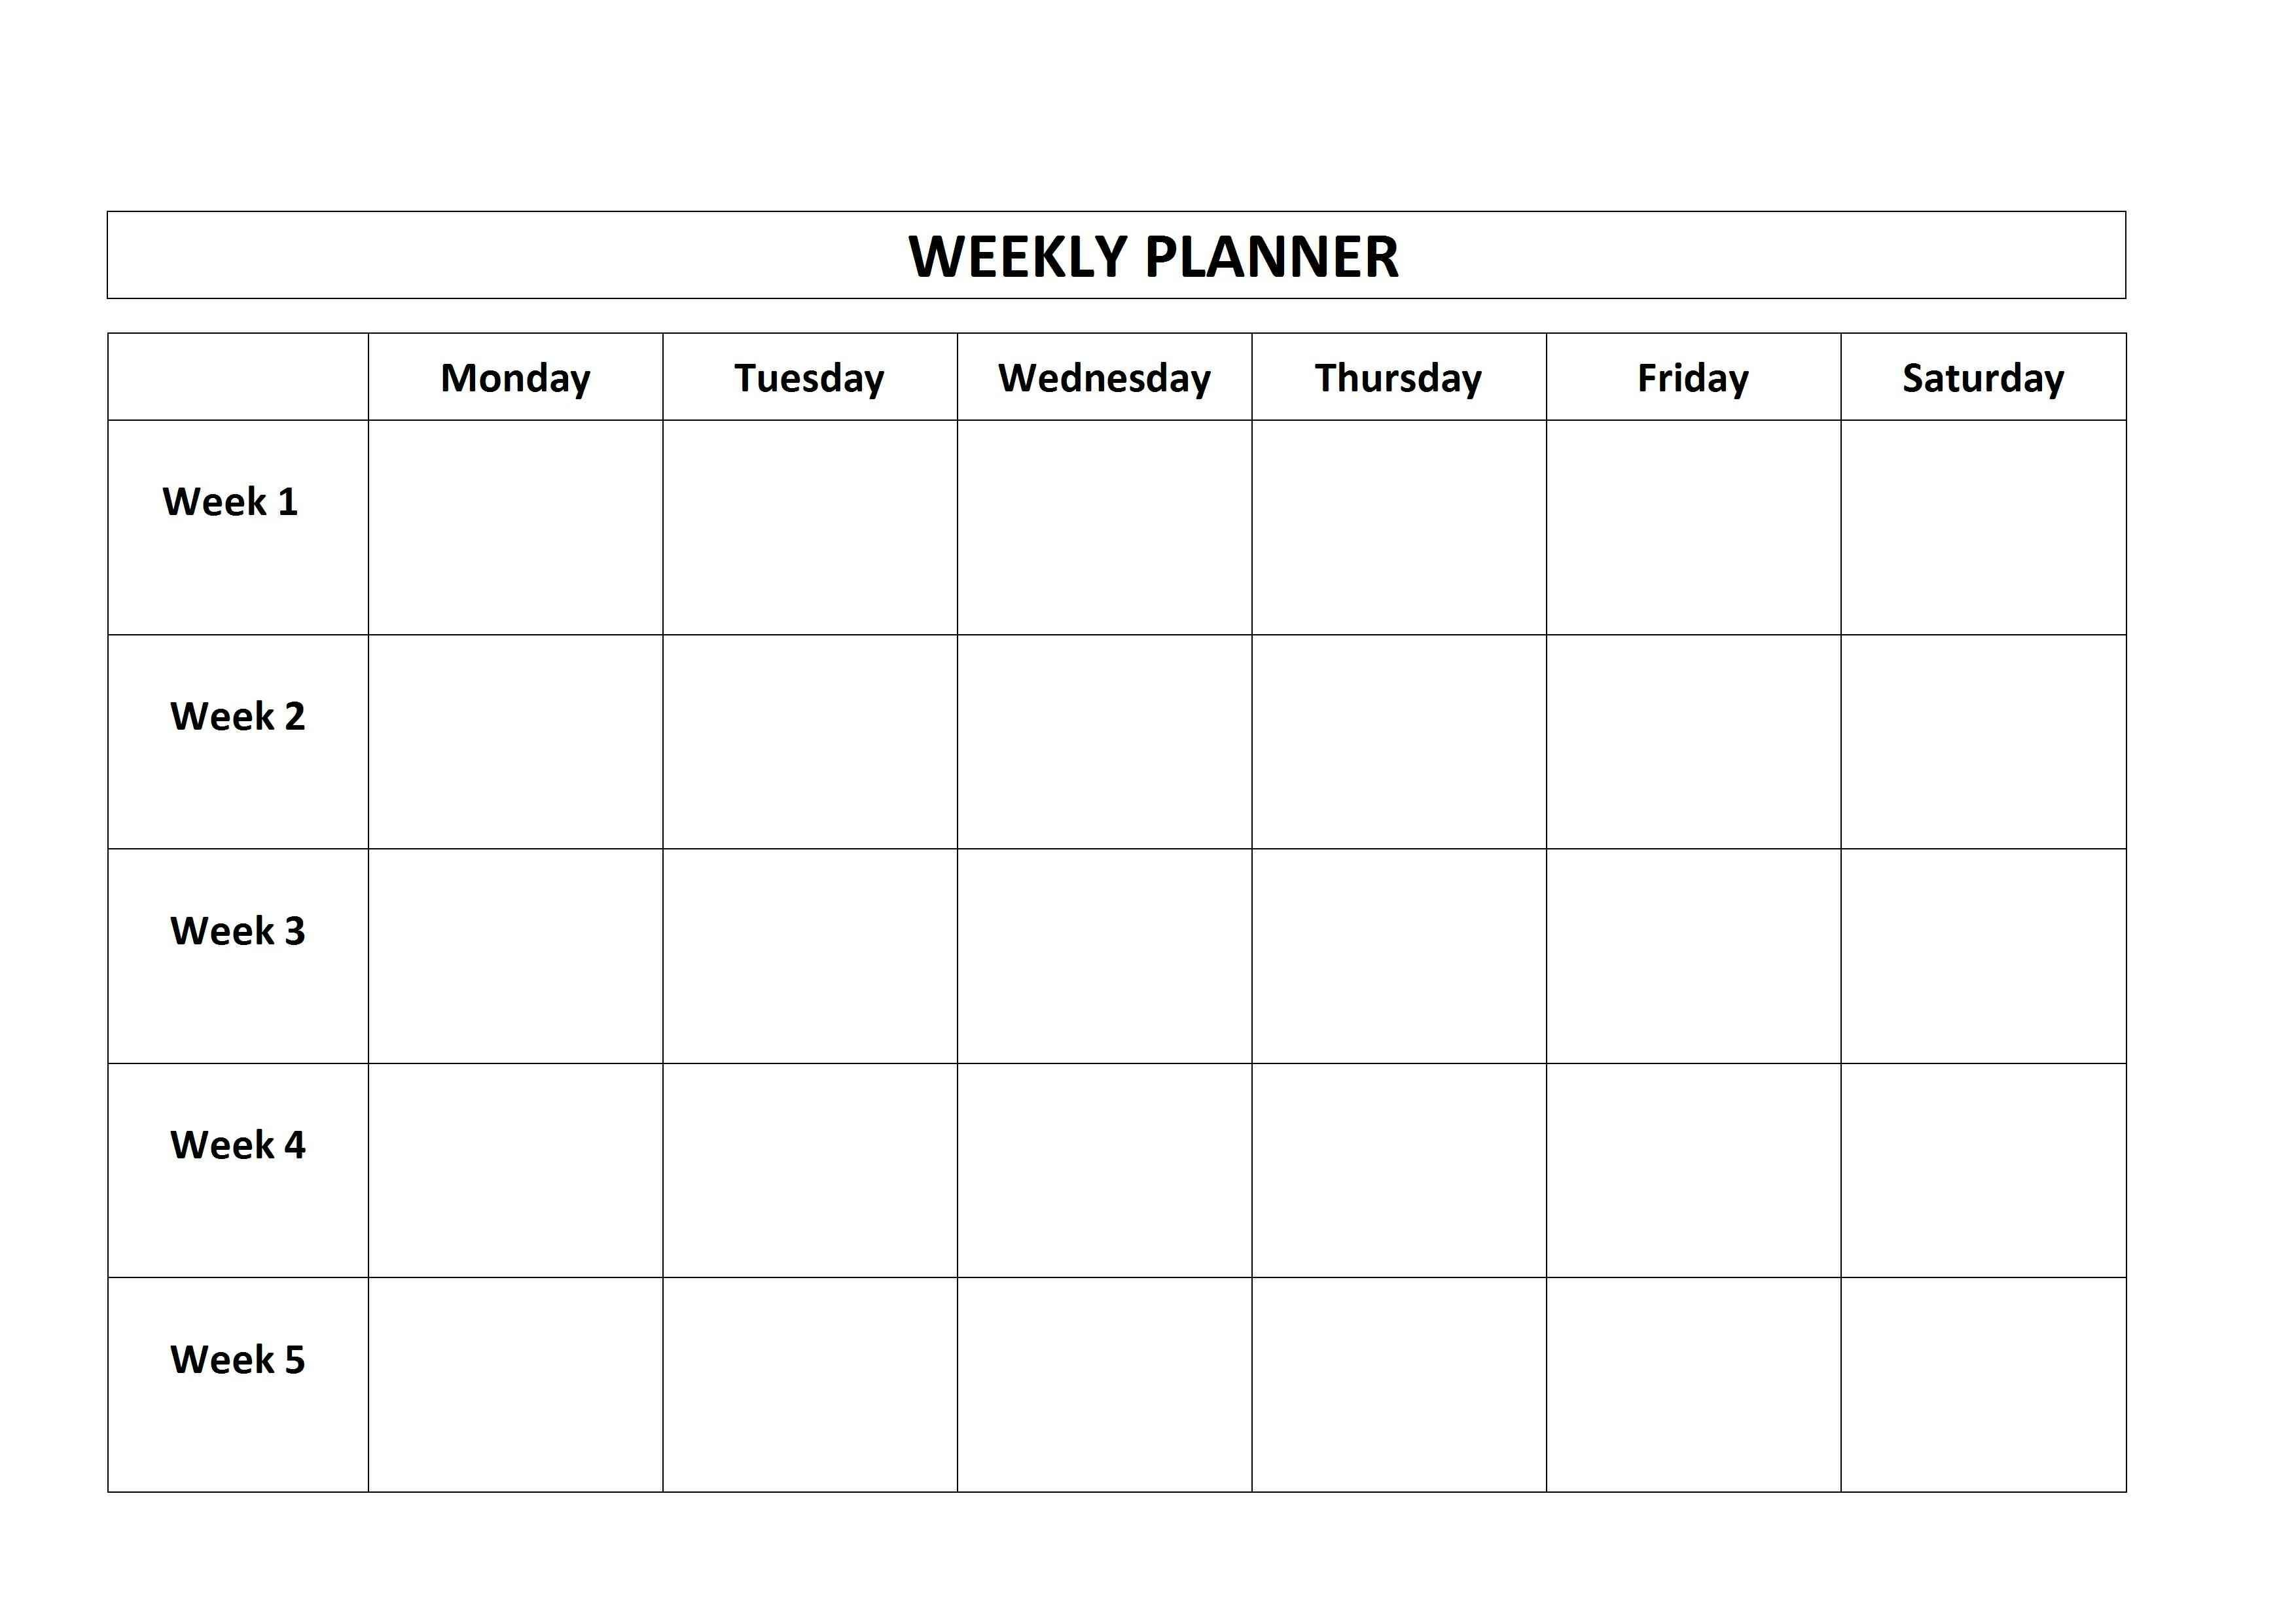 Free Printable Weekly Planner Monday Friday School Calendar Free Printable Weekly Planner Monday-Friday